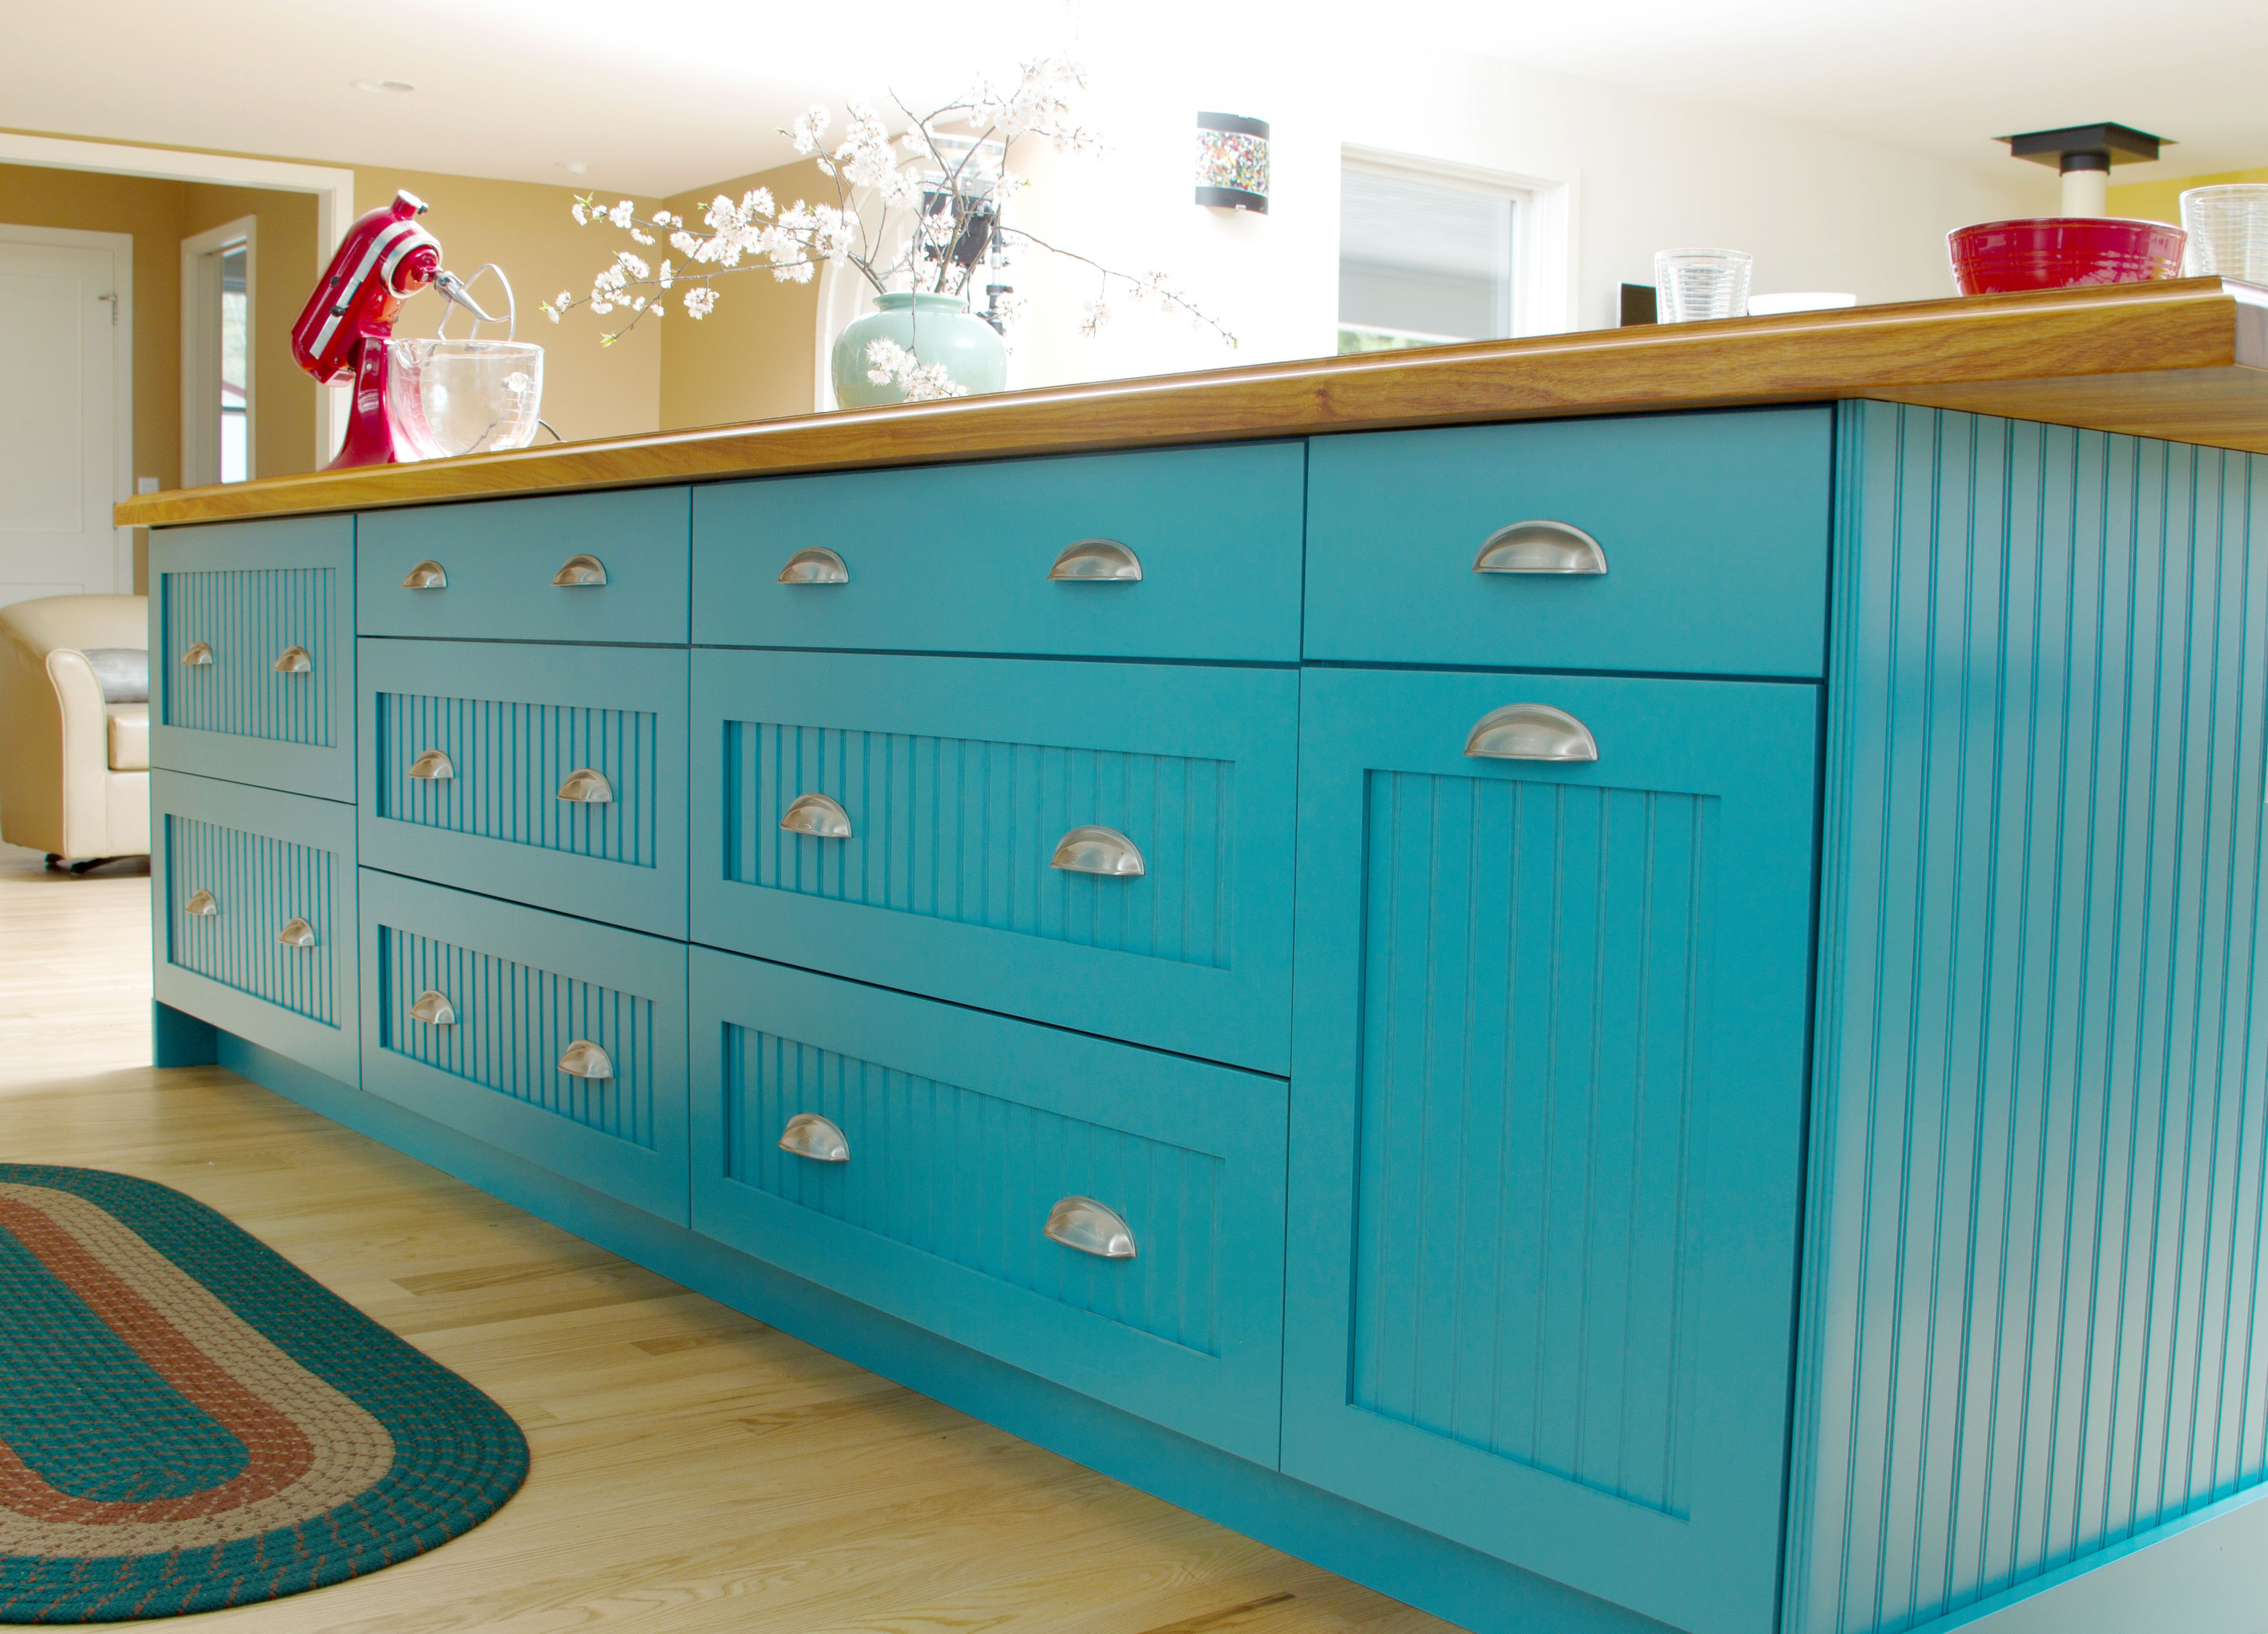 Teal Blue Contemporary Cottage Kitchen Island with Dura Supreme ...